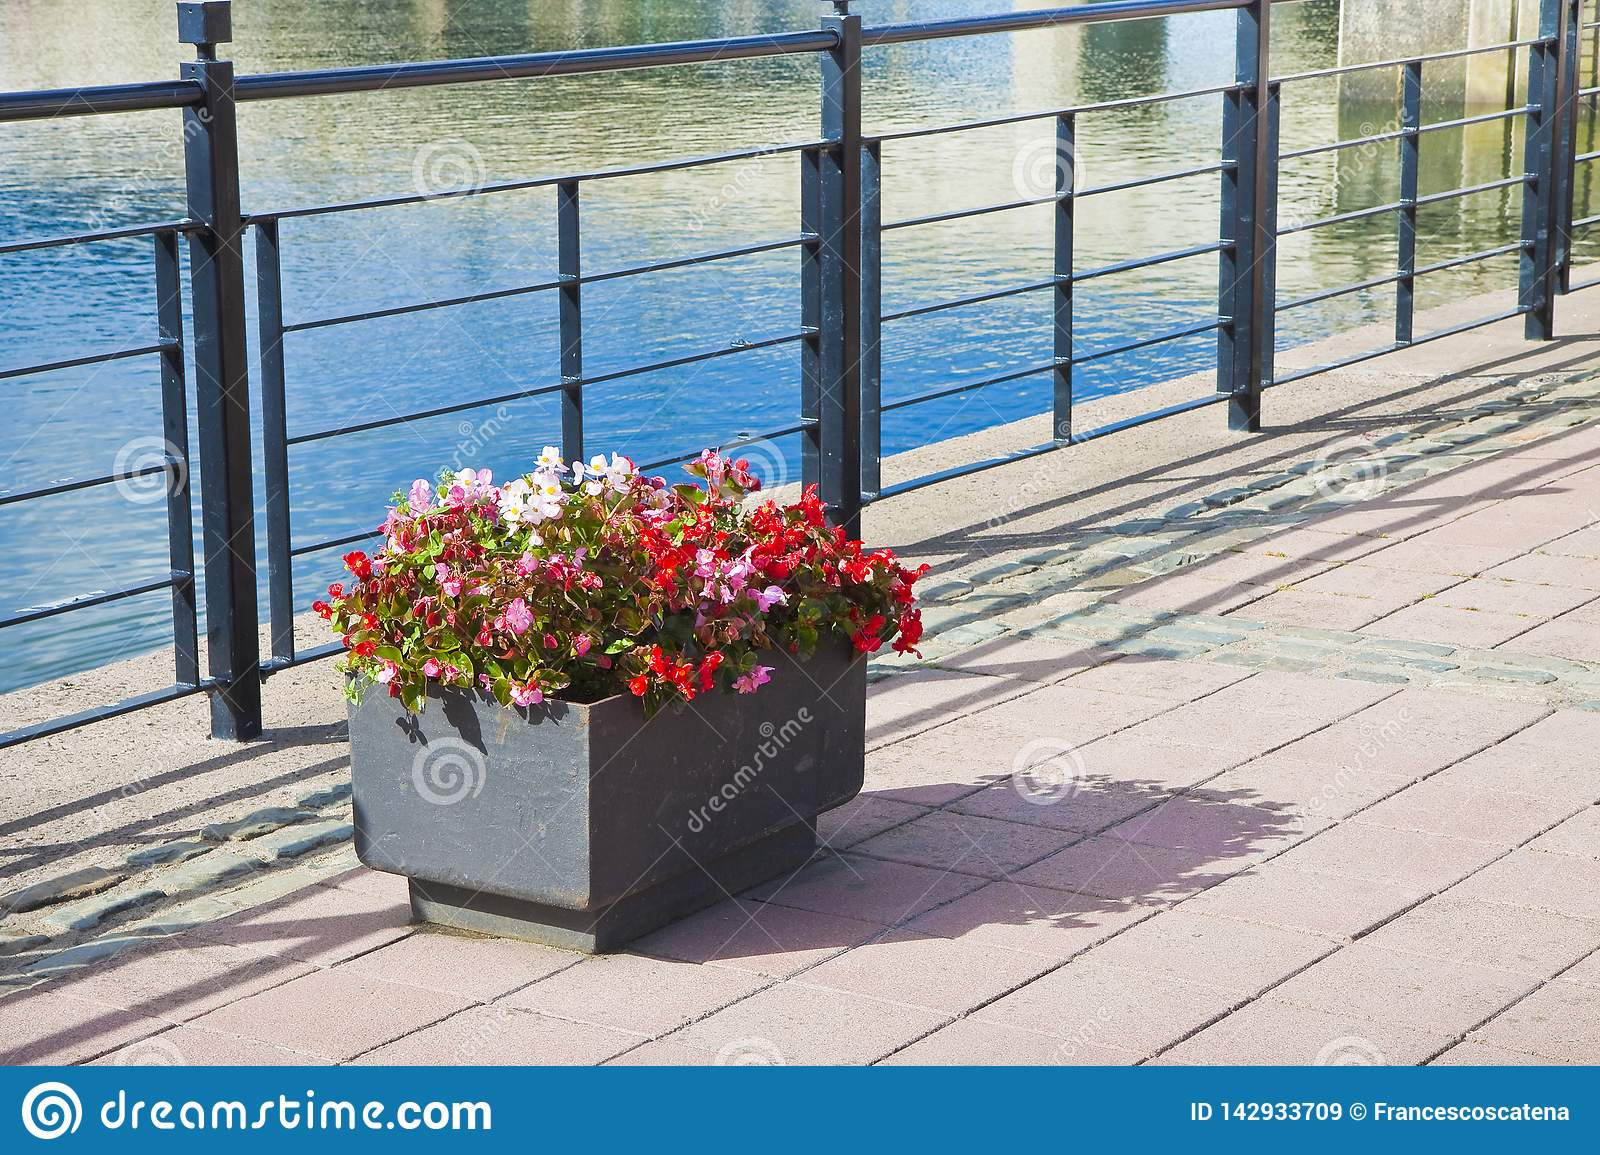 Metal flowerpot with red flowers in a sidewalk by the lake